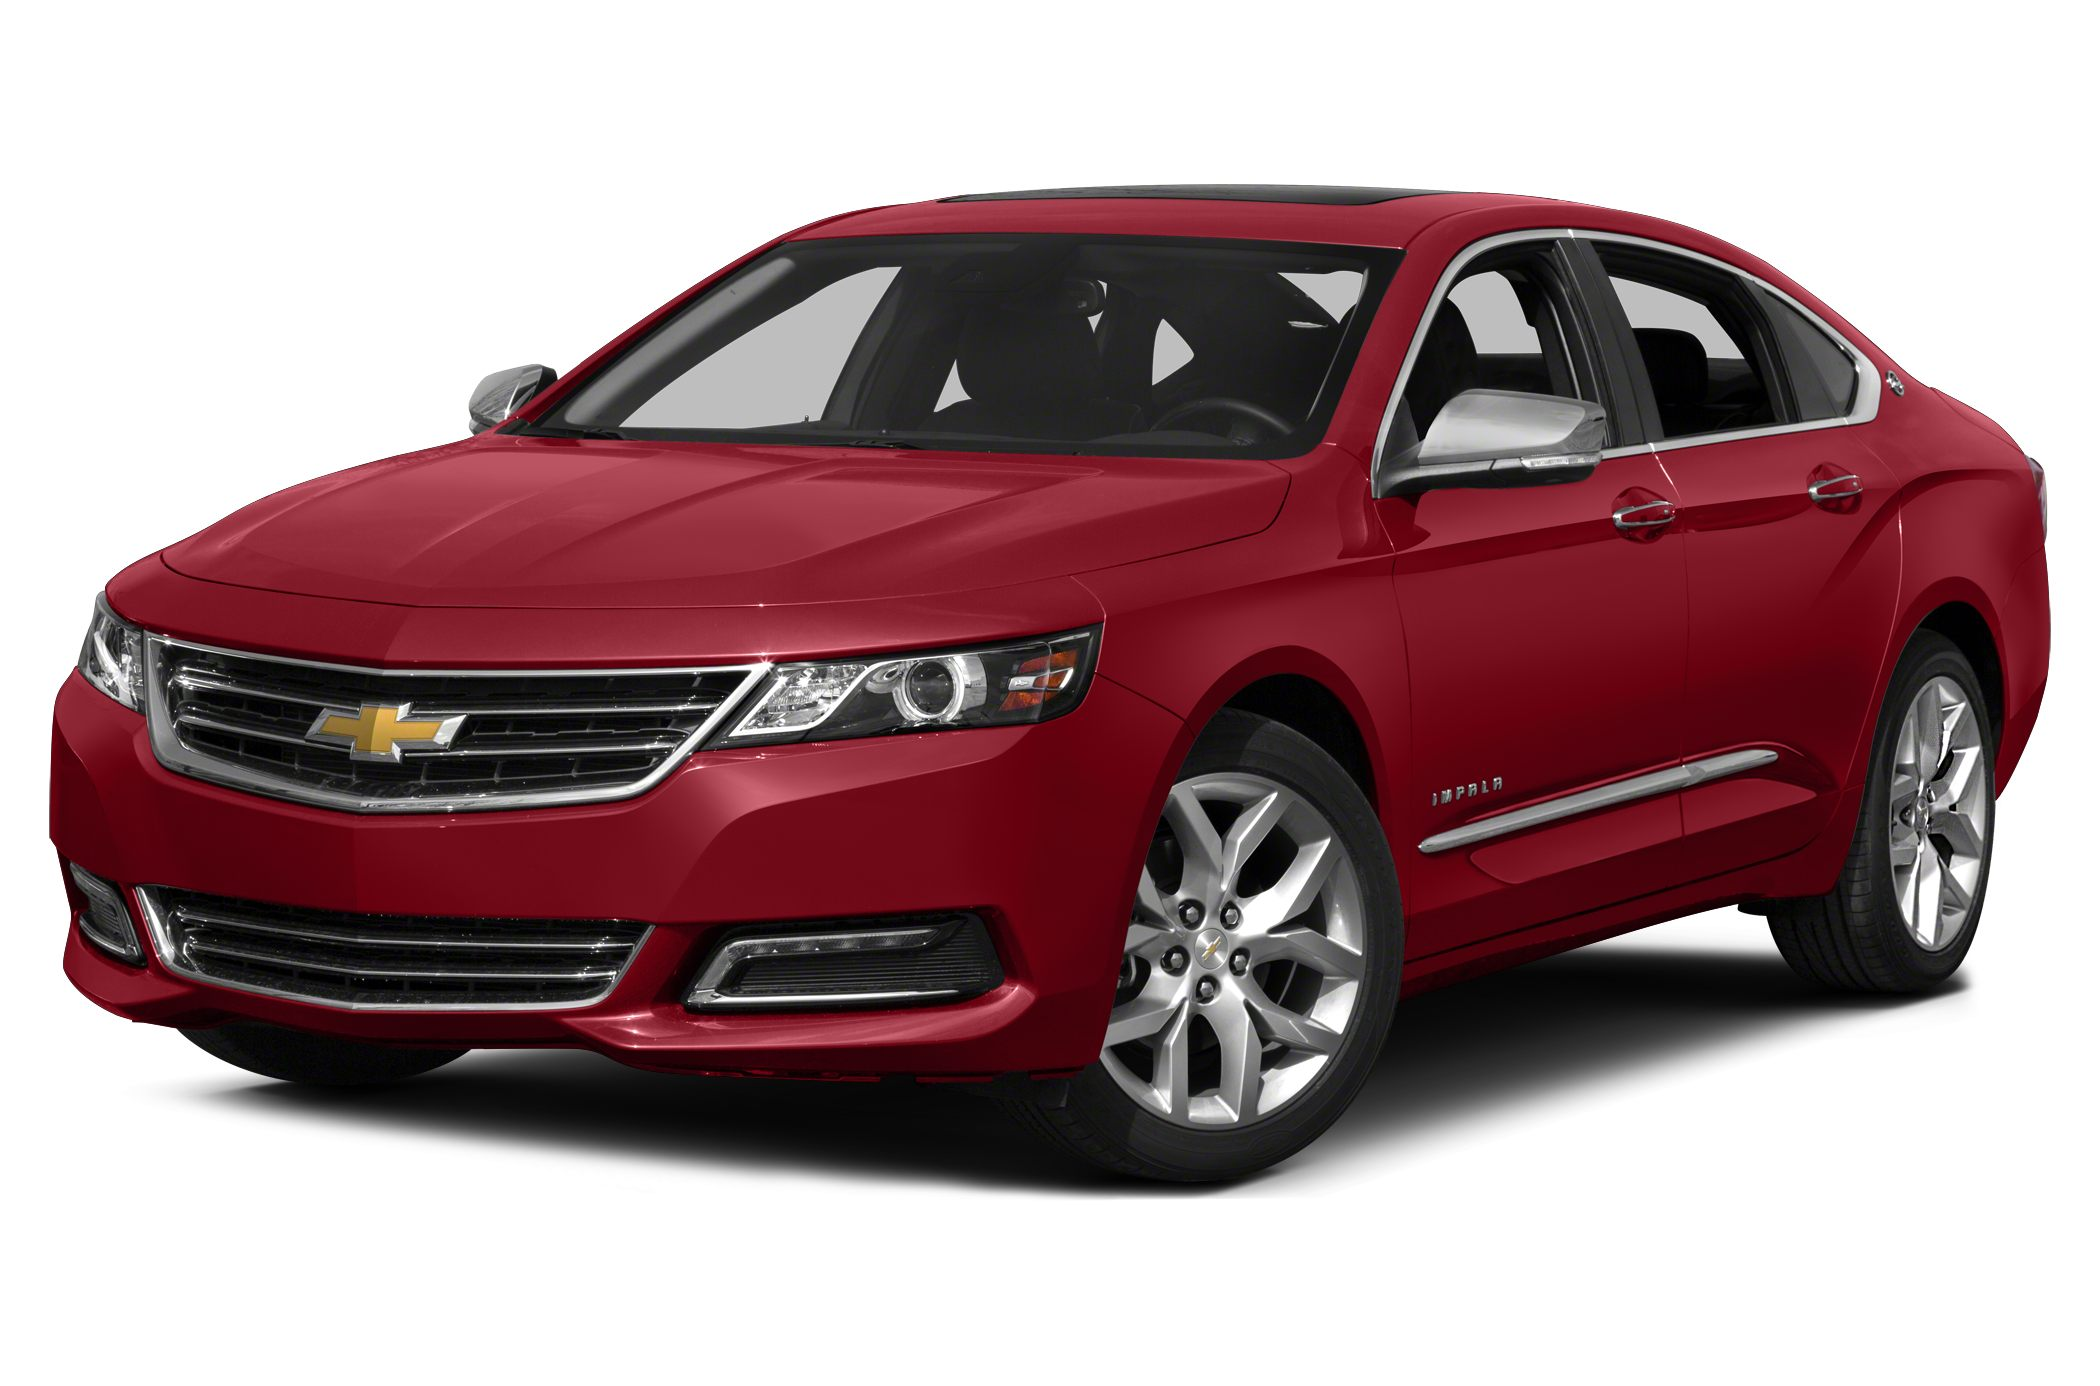 2014 Chevrolet Impala 2LT Sedan for sale in Hanford for $24,995 with 18,631 miles